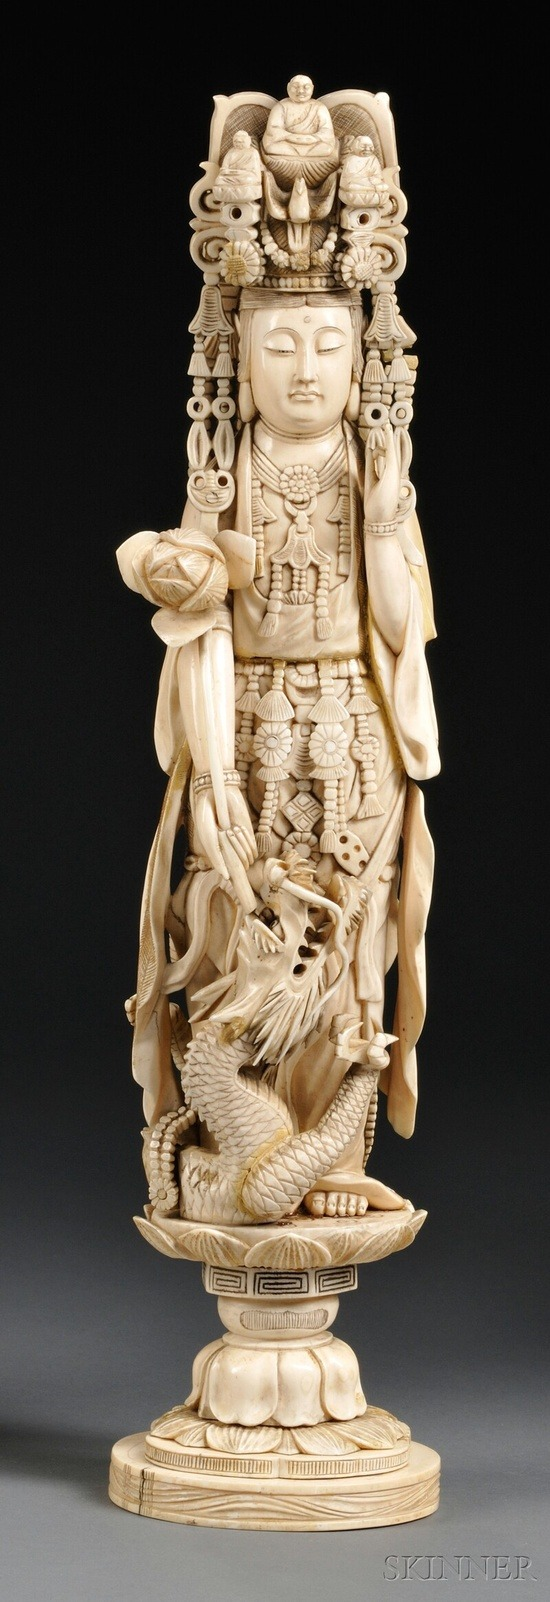 Kwan Yin, China, 19th century,  in adorned clothing and headdress, left hand in the mudra of appeasement position, right hand holding a lotus blossom, a swirling dragon at feet, standing on a lotus base.